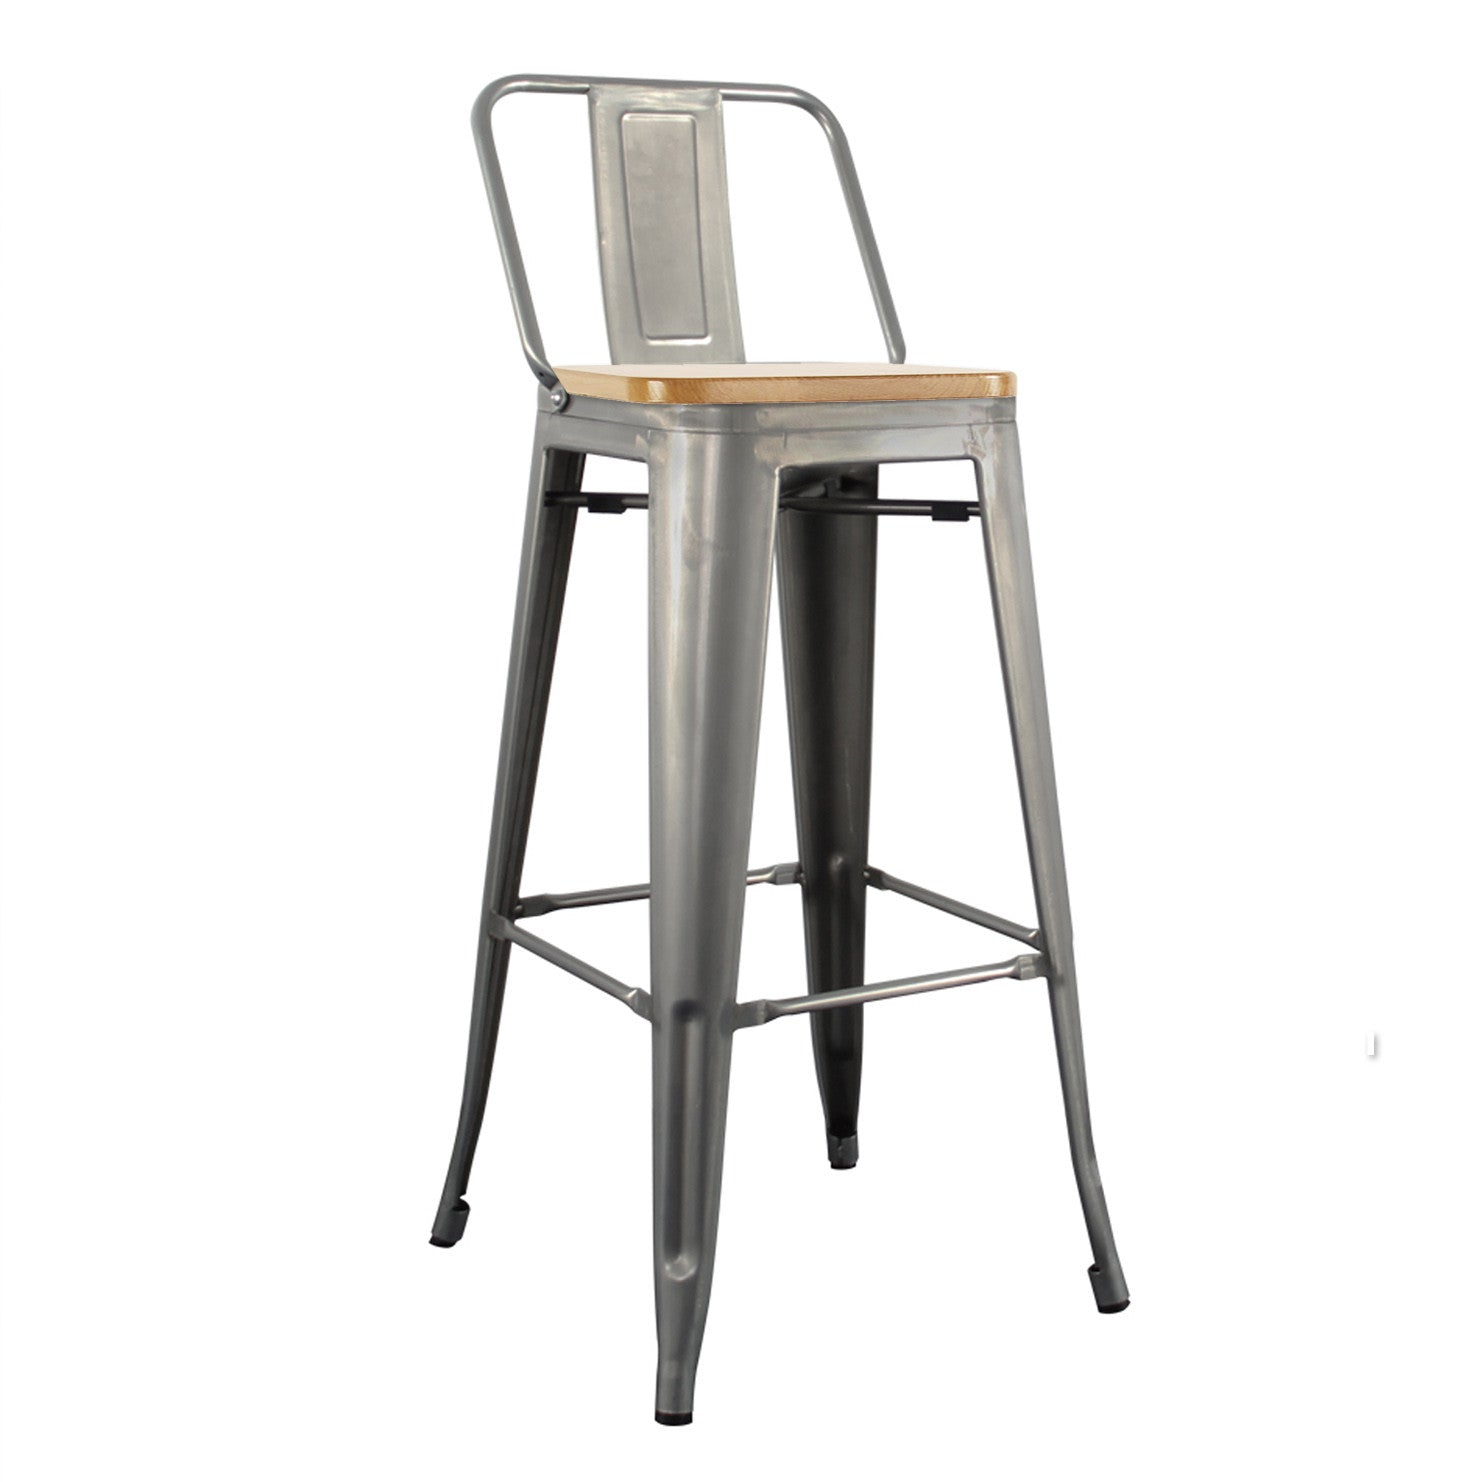 Bar Stool MC-012PC-SN -  كرسي بار - Shop Online Furniture and Home Decor Store in Dubai, UAE at ebarza